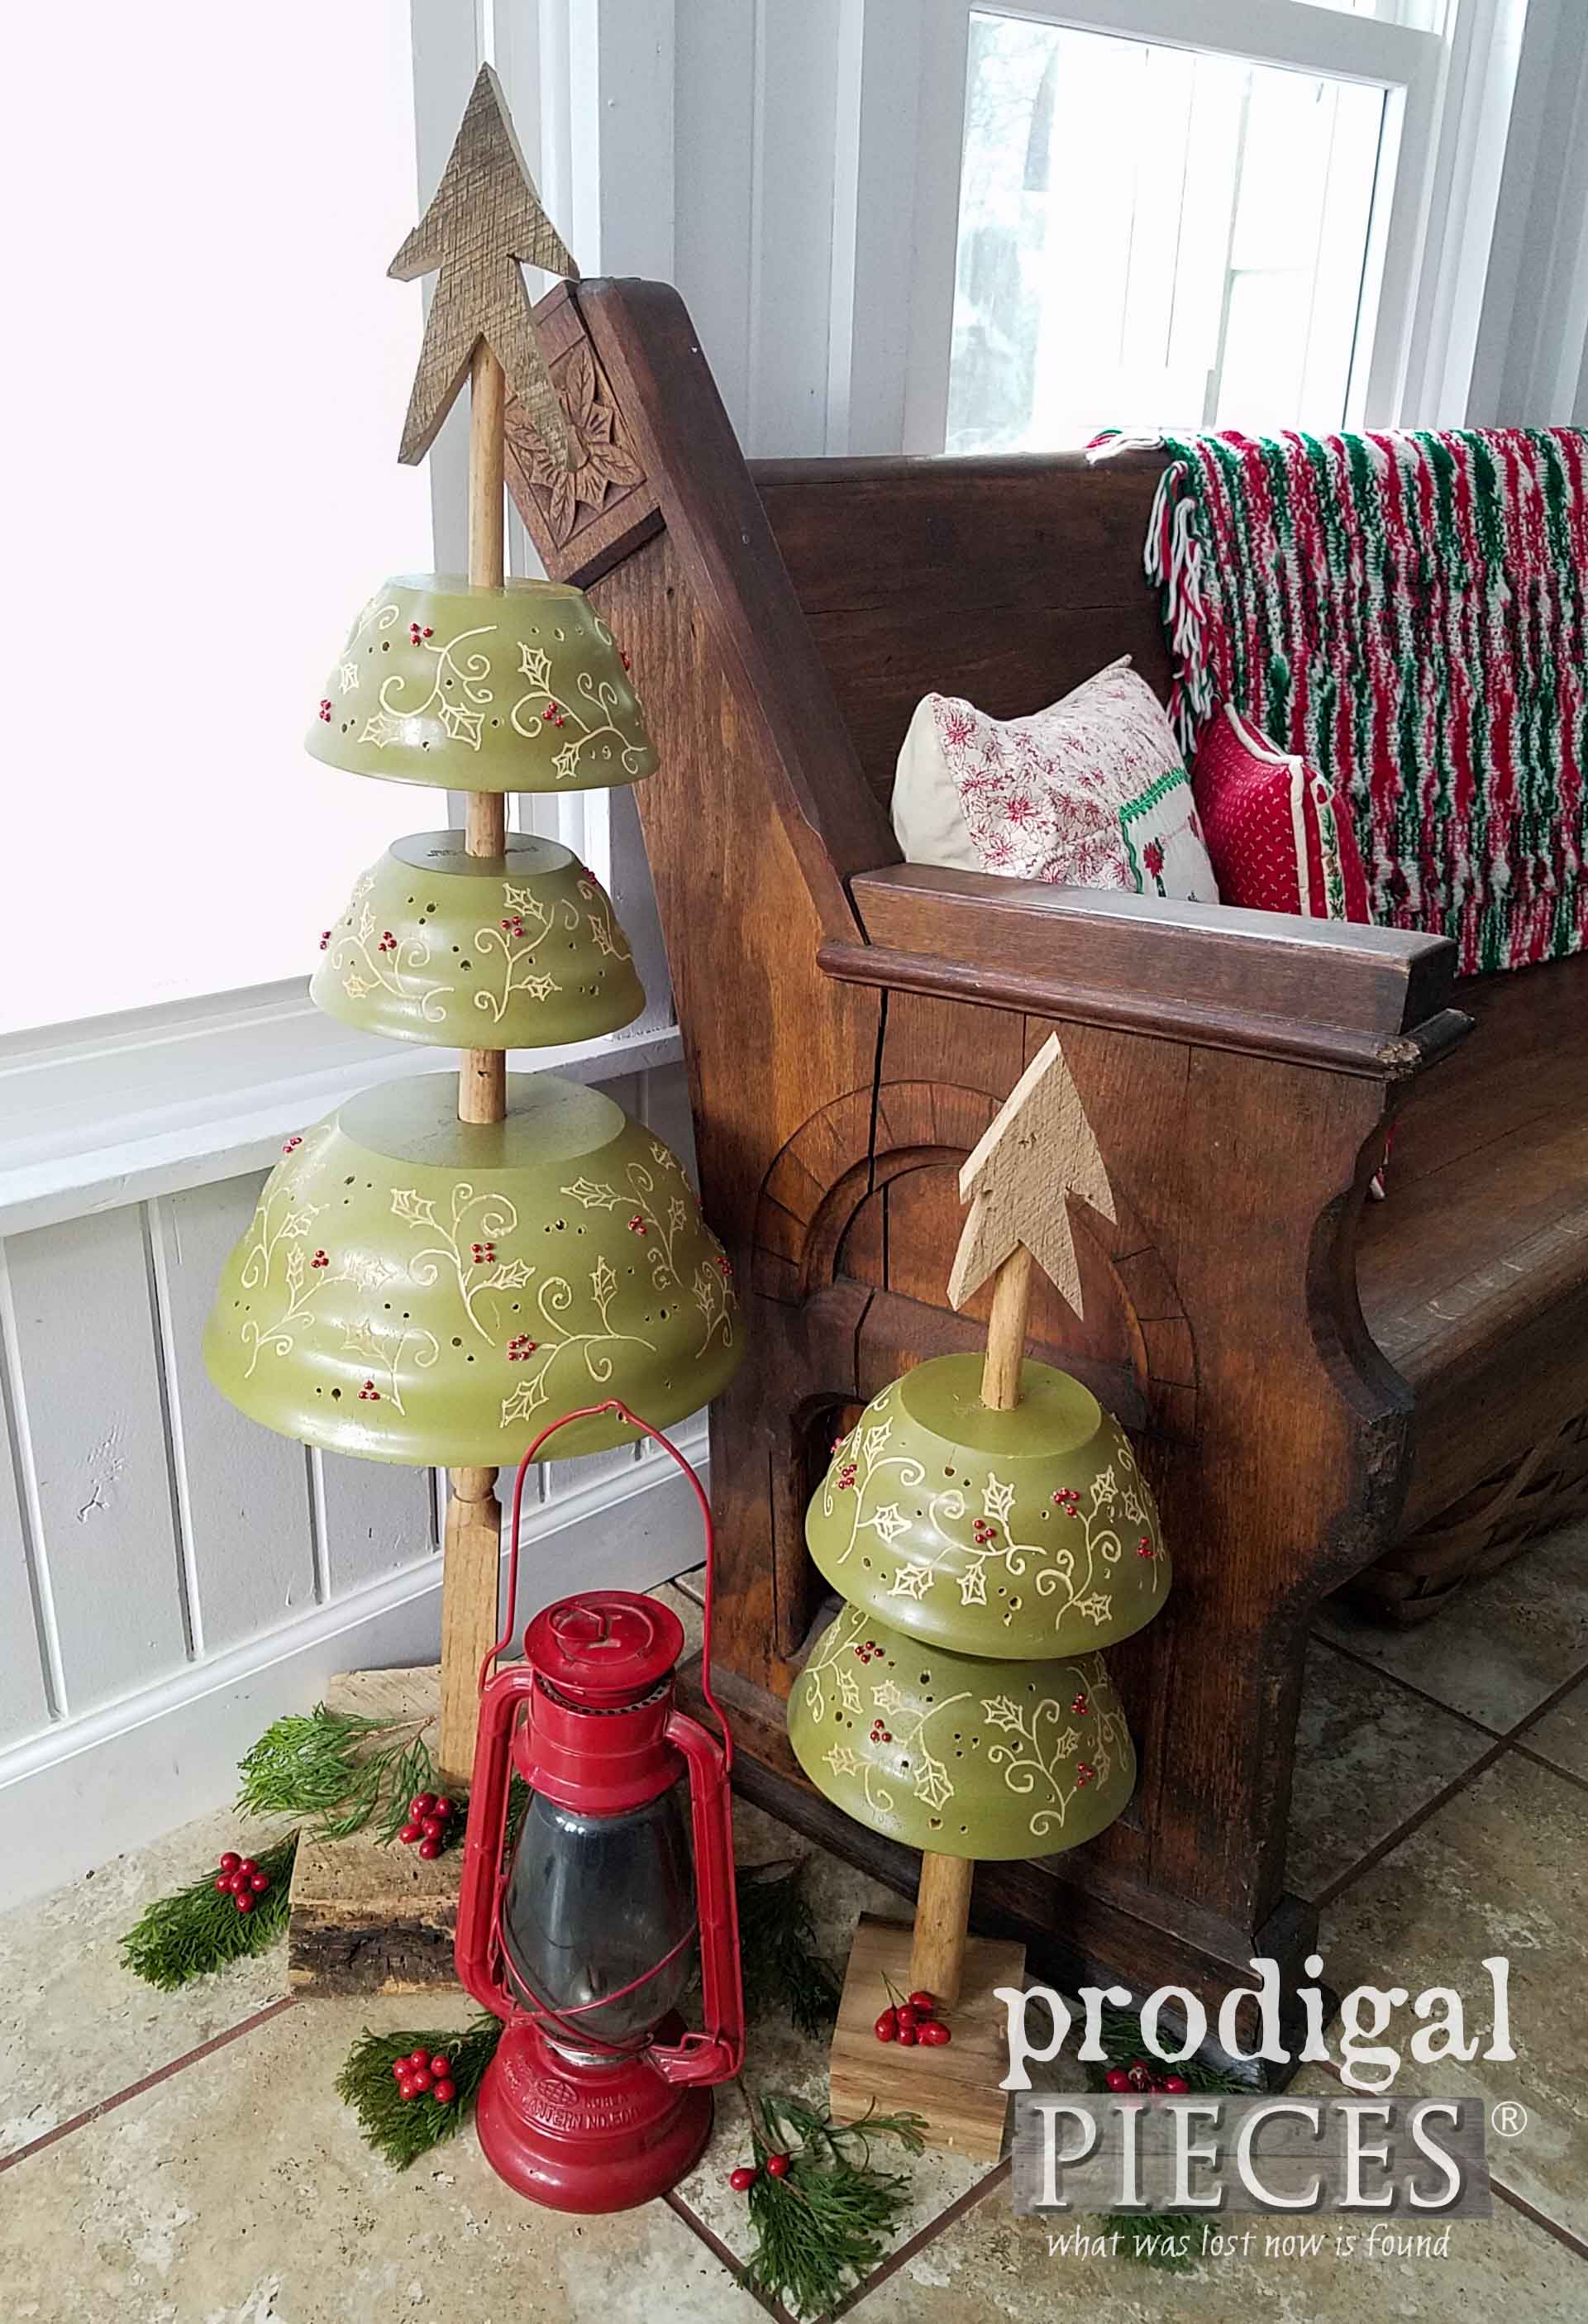 DIY Repurposed Christmas Trees from Upcyled Salad Bowls by Larissa of Prodigal Pieces | prodigalpieces.com